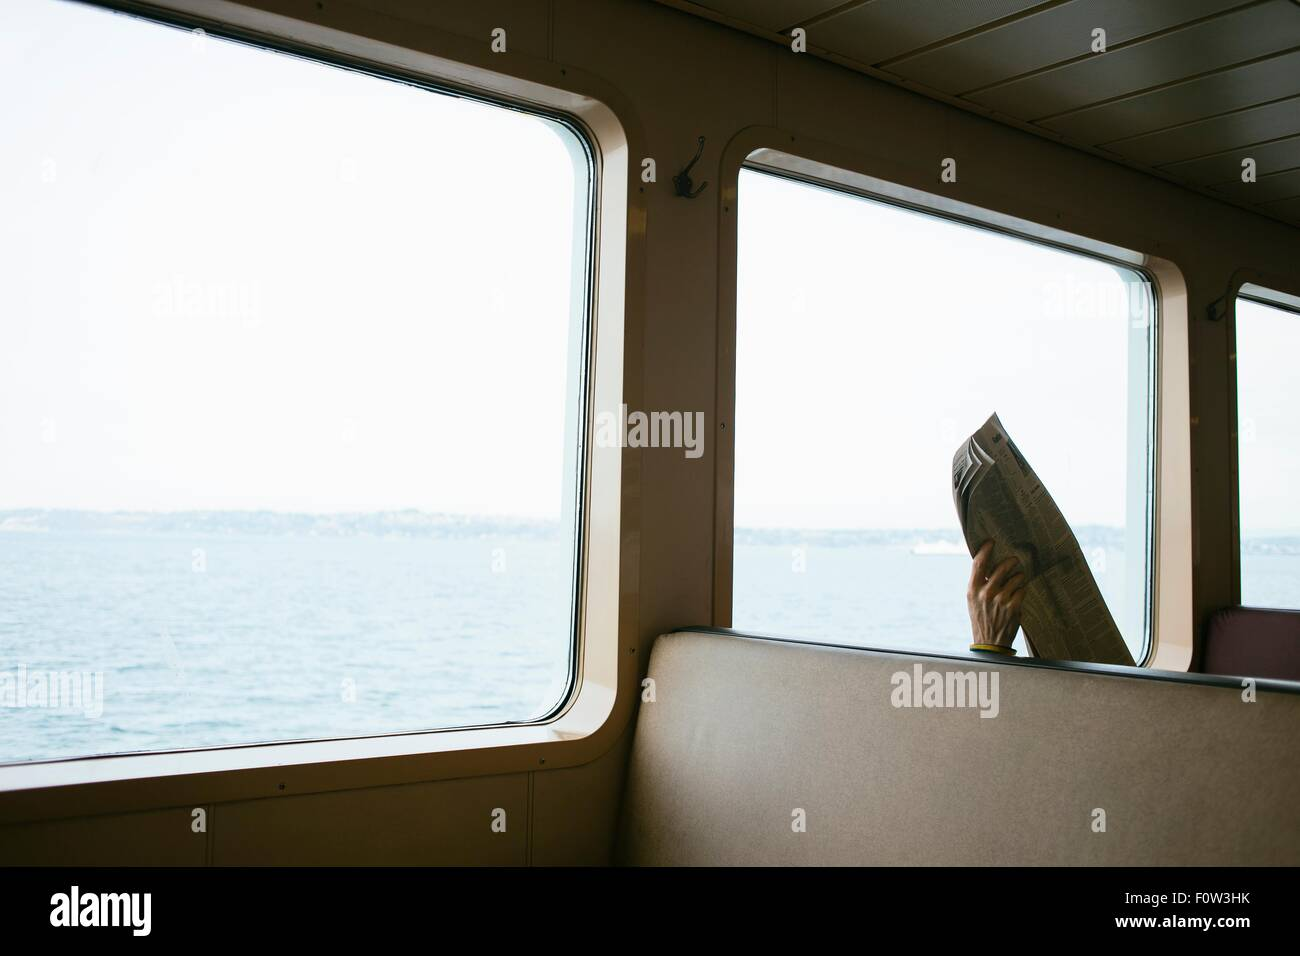 Mans hand holding up newspaper on seat on passenger ferry - Stock Image